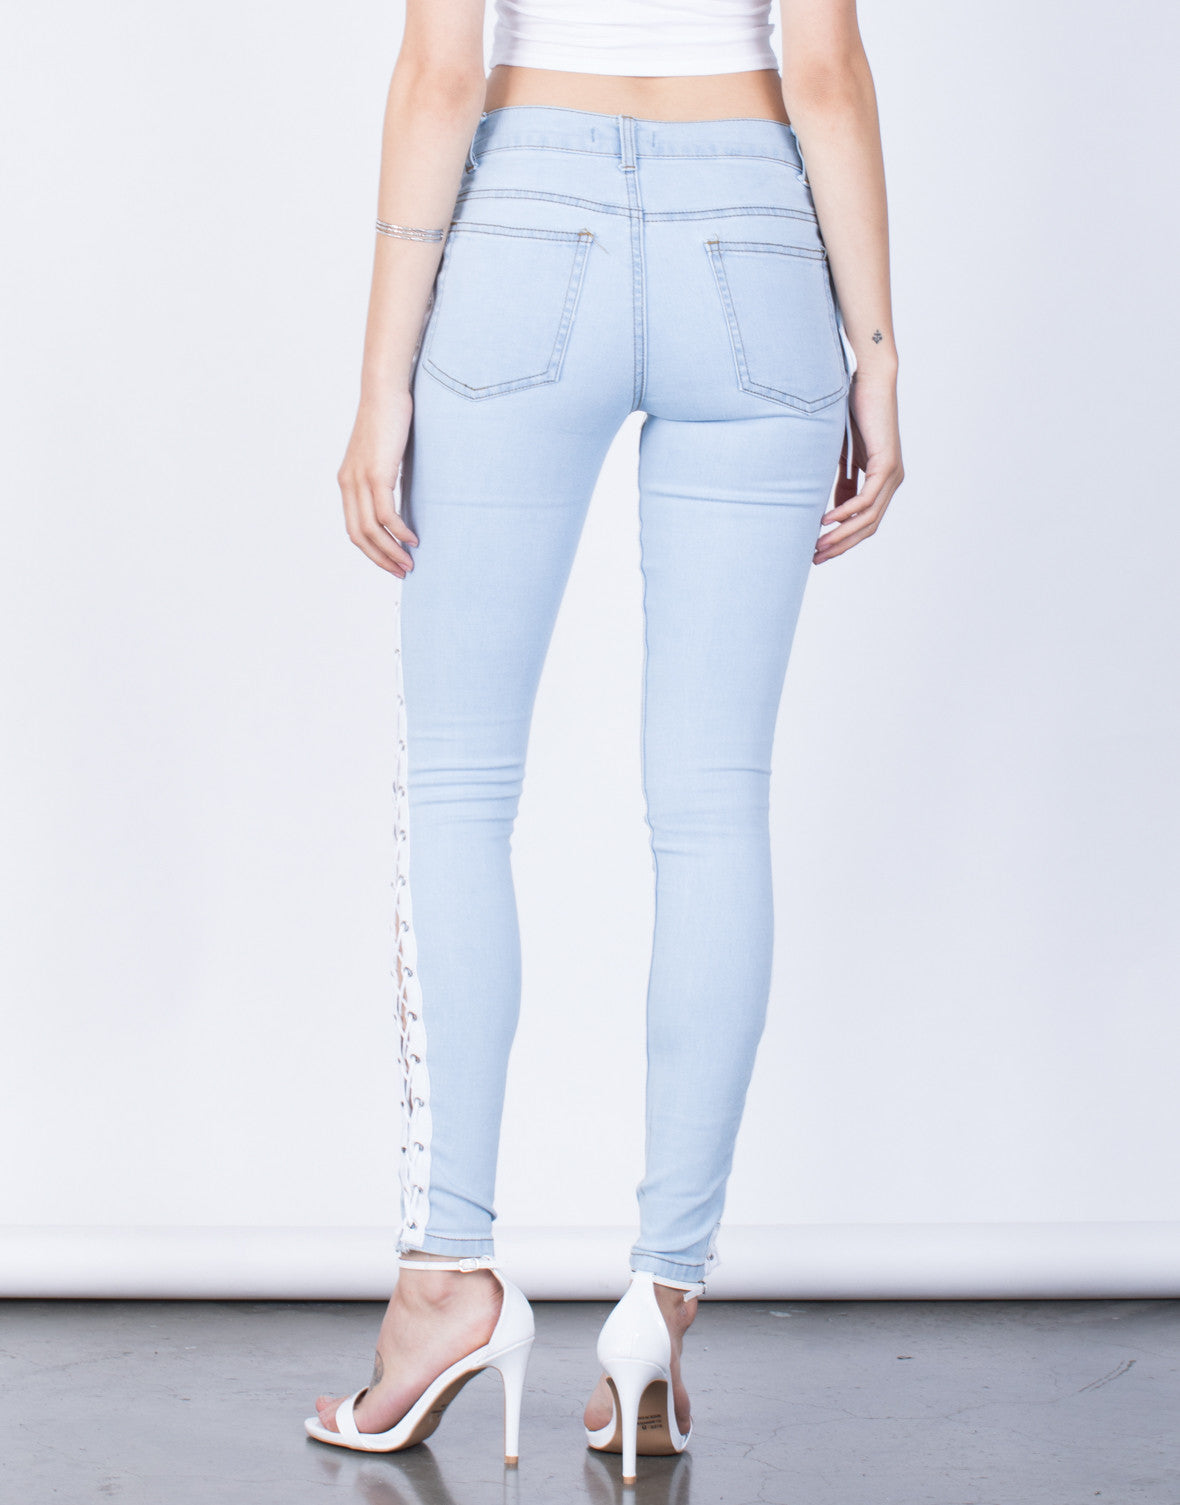 Back View of Tied Together Jeans